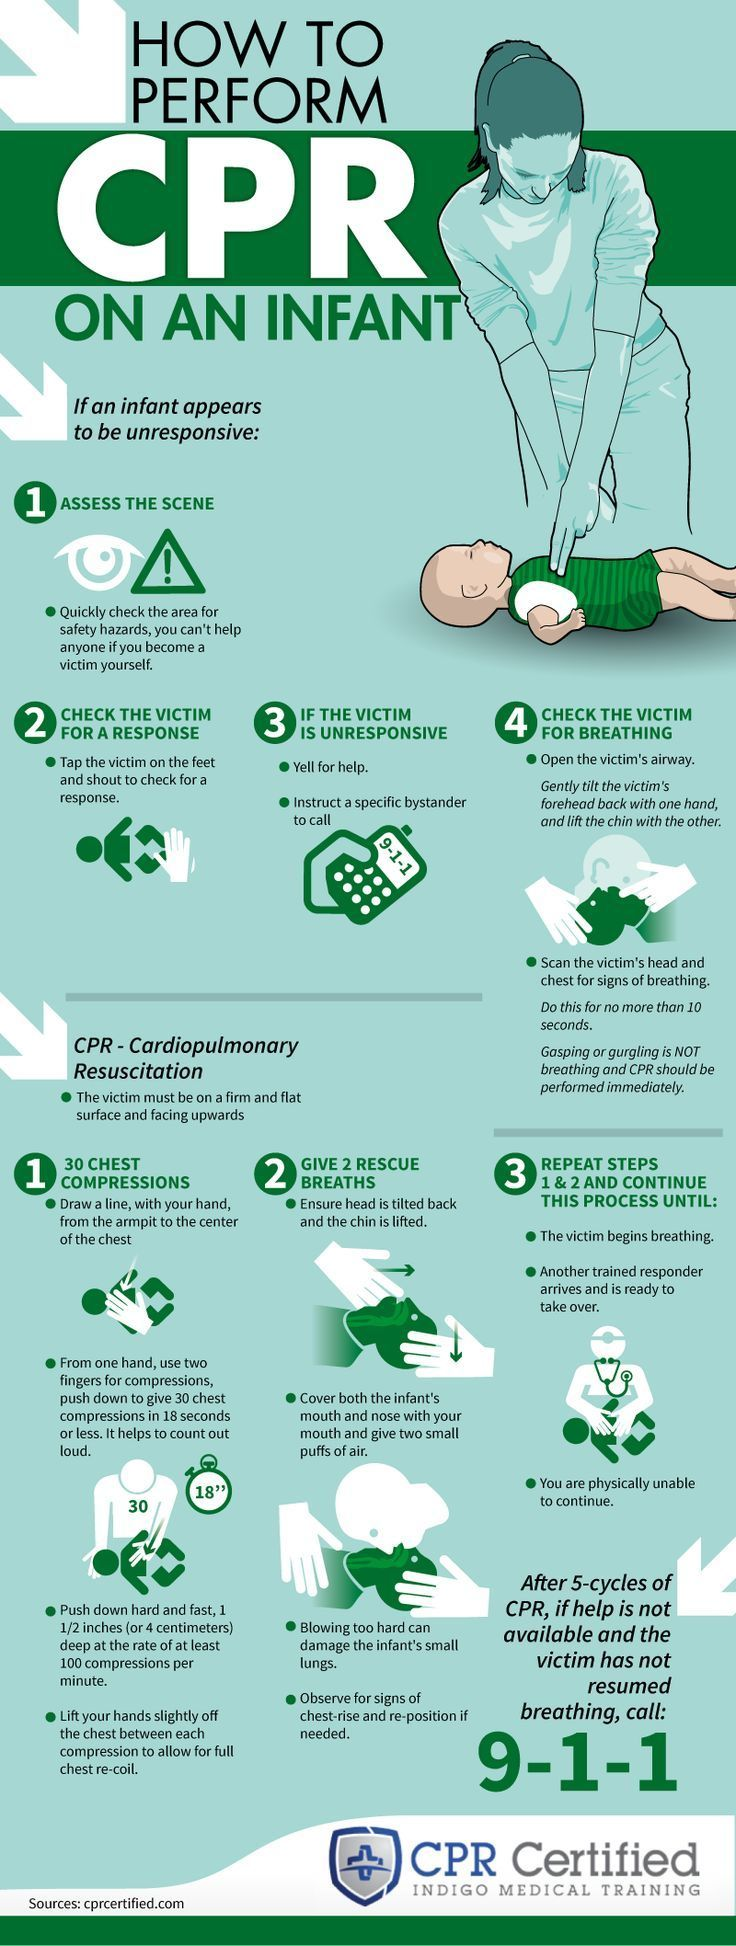 How to Perform CPR on an Infant - Infographic